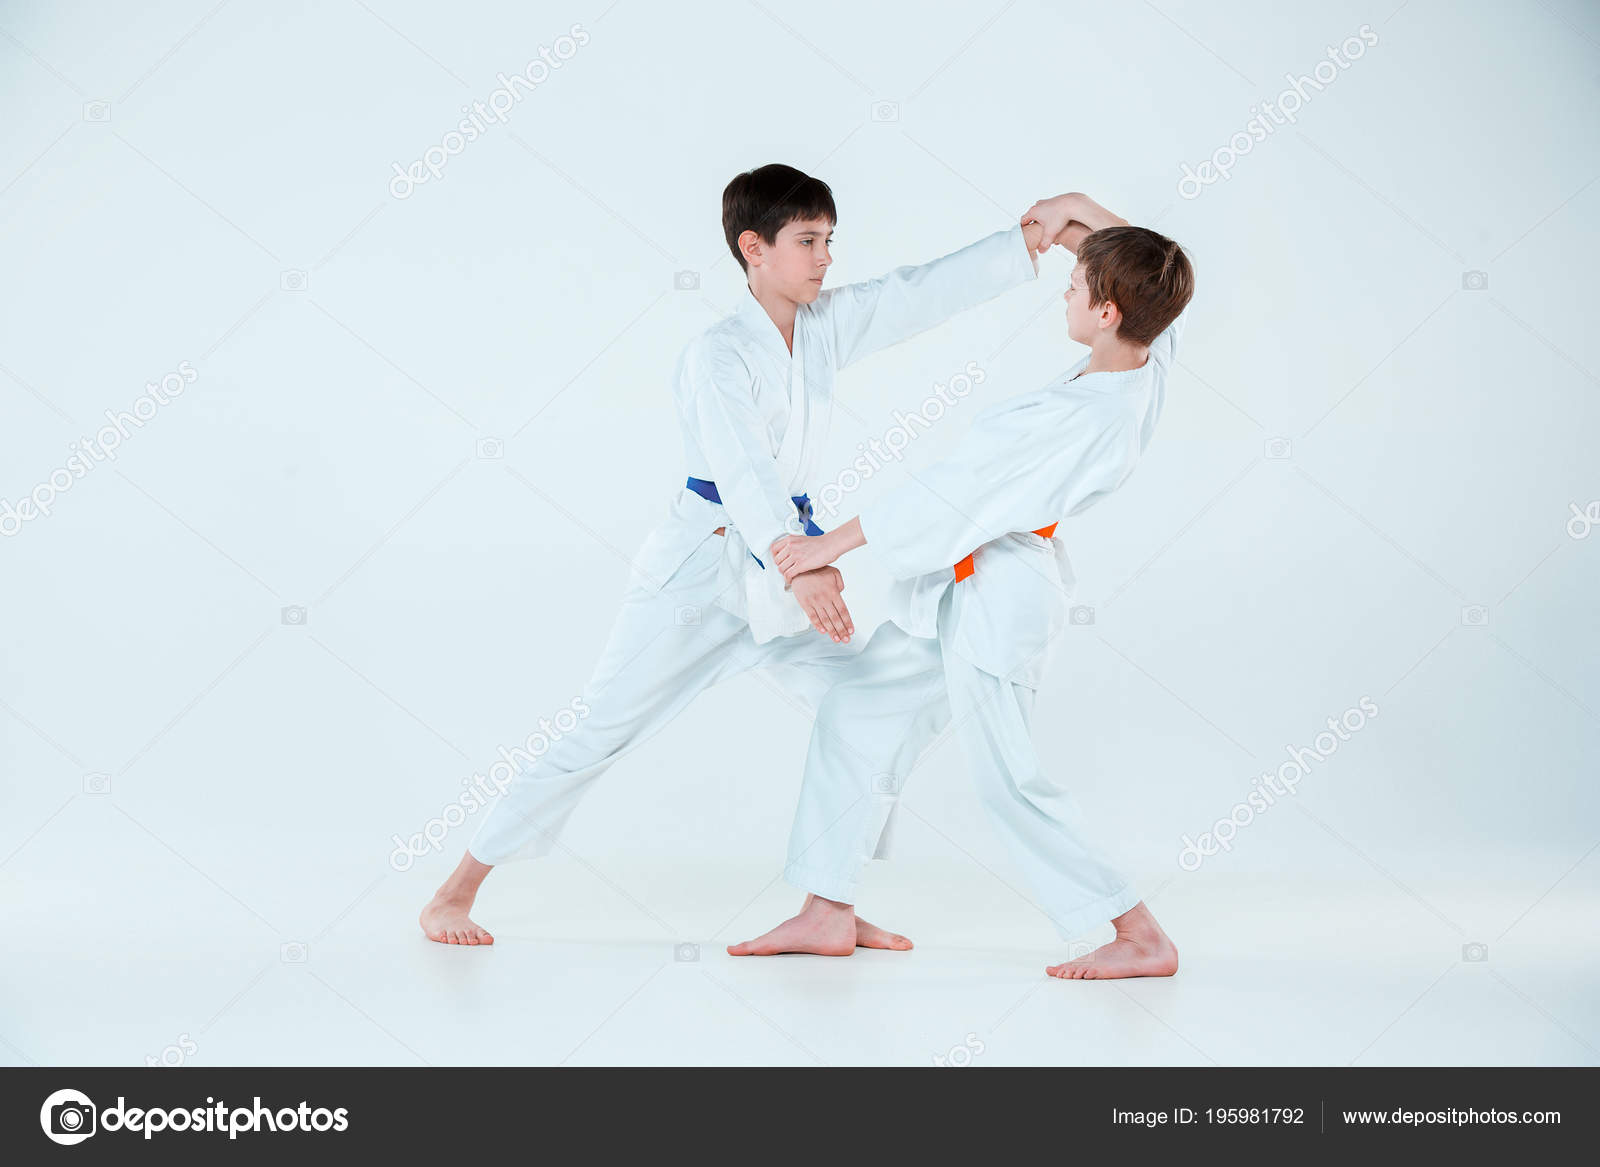 4652fe8fee771 The two boys fighting at Aikido training in martial arts school. Healthy  lifestyle and sports